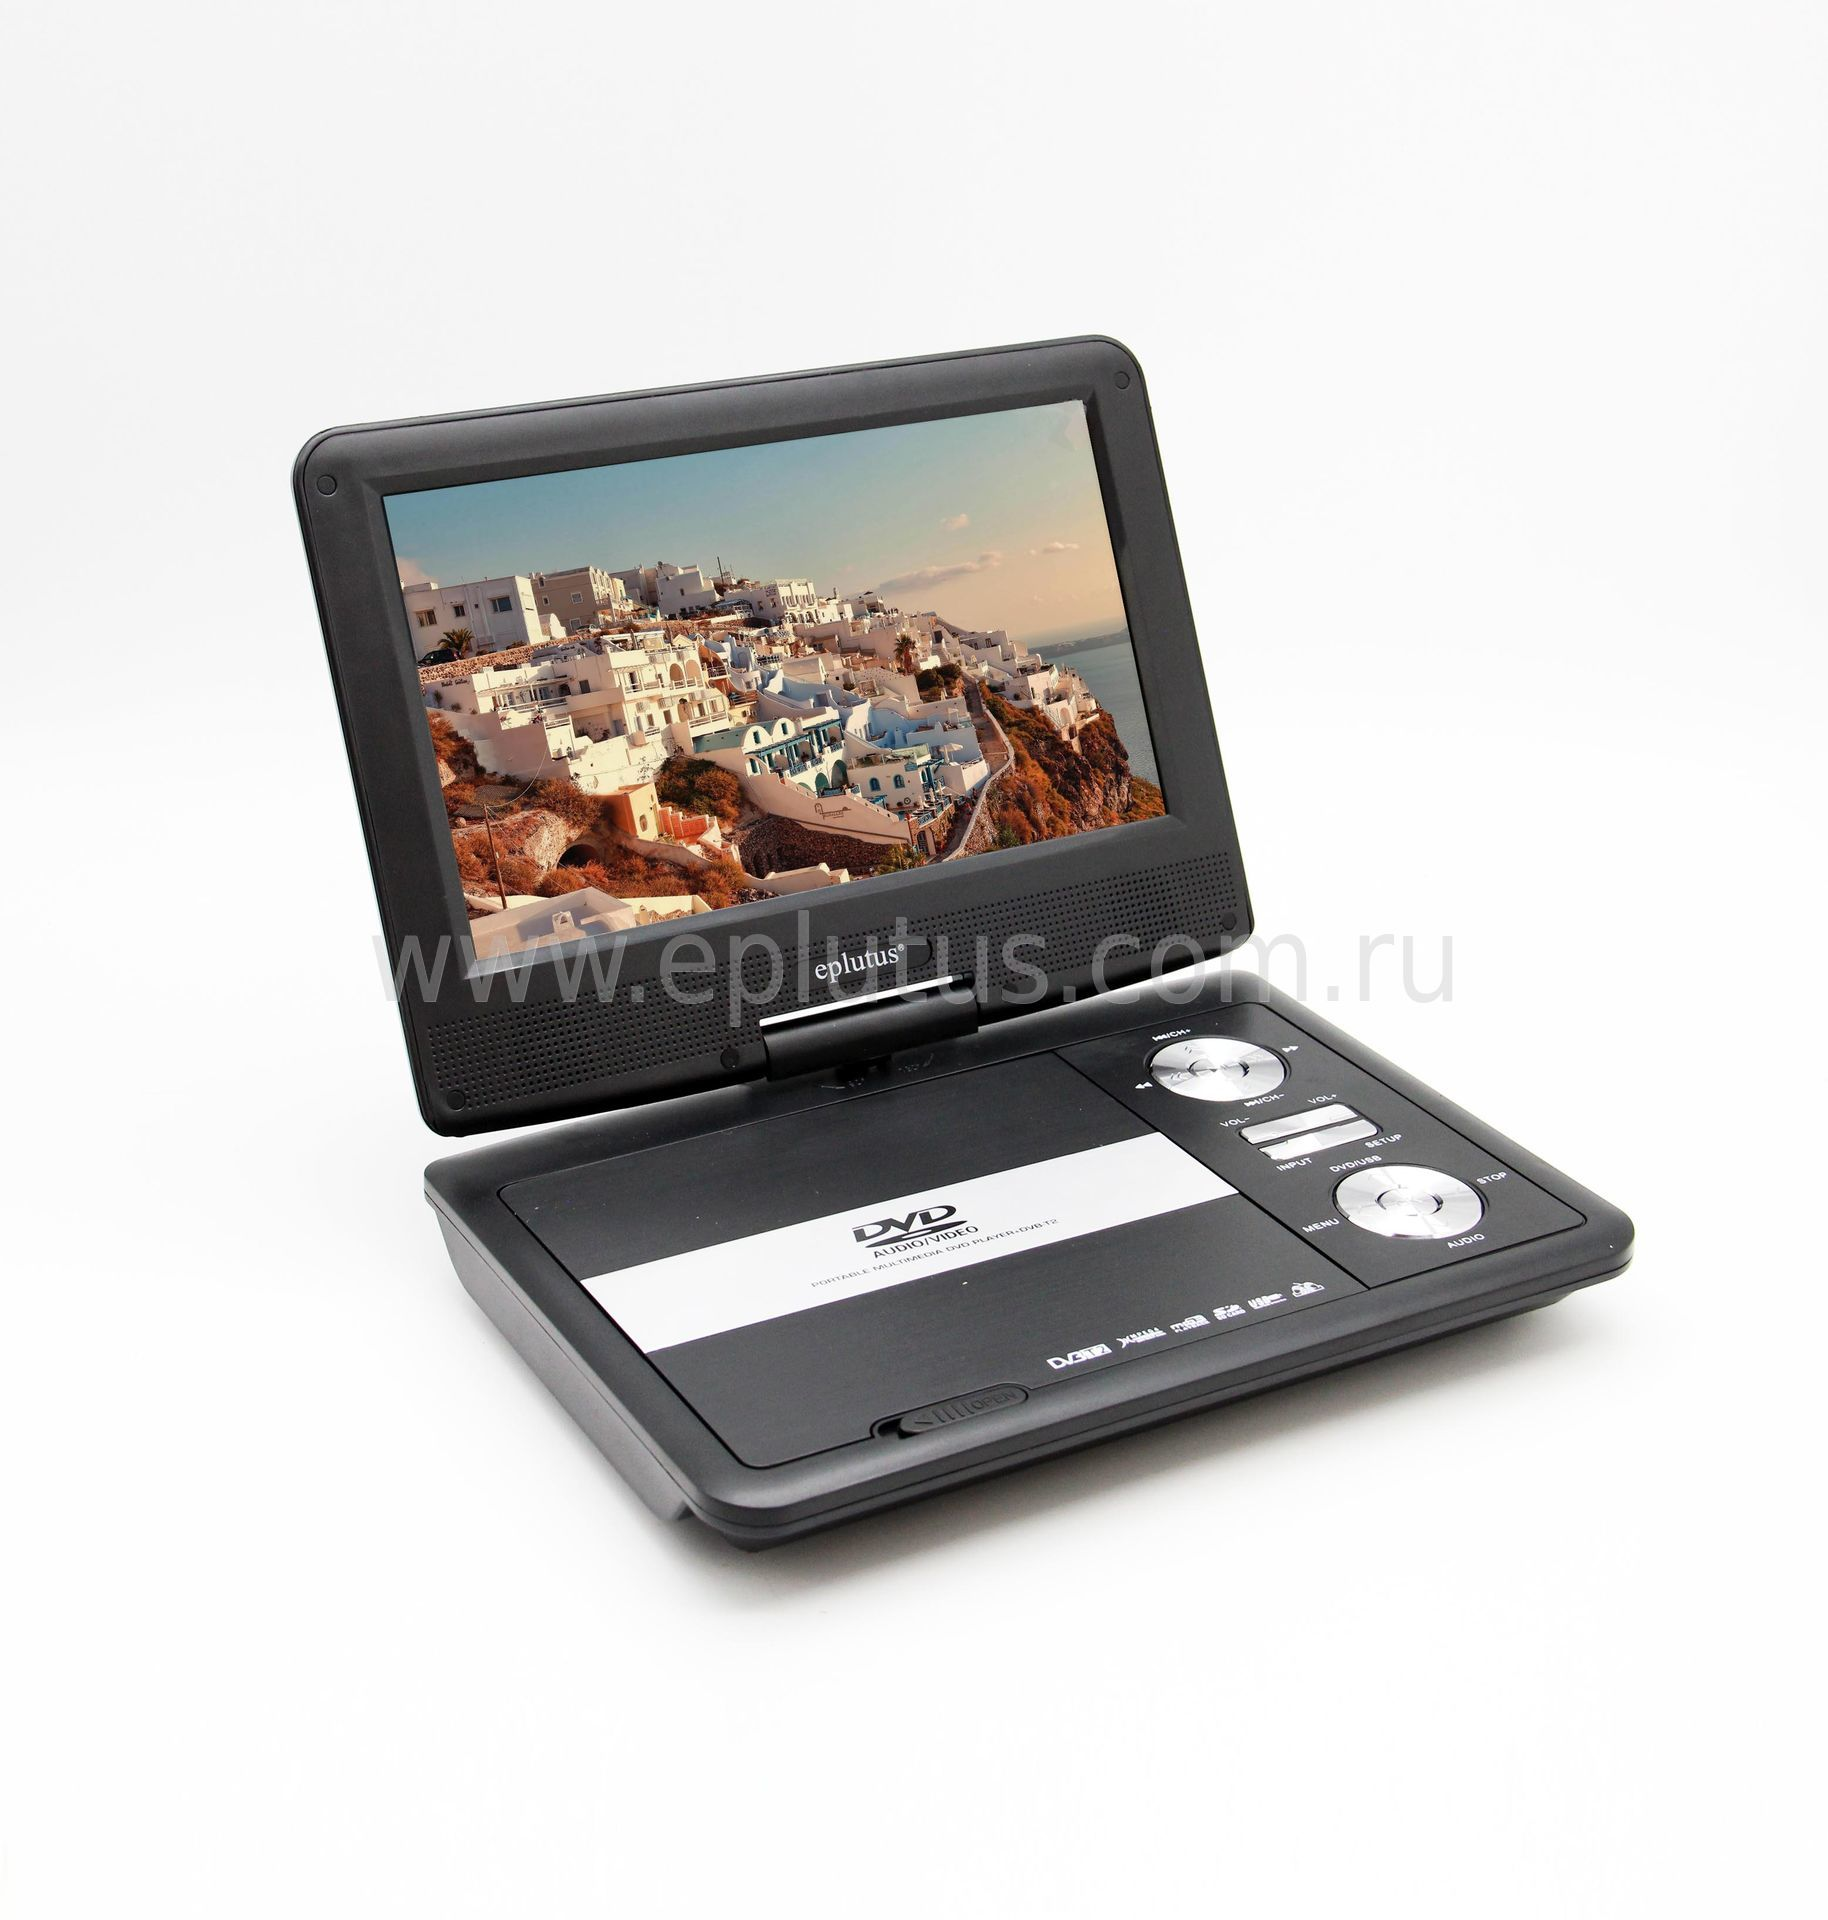 Eplutus EP-9520T dvd плеер mystery mps 105